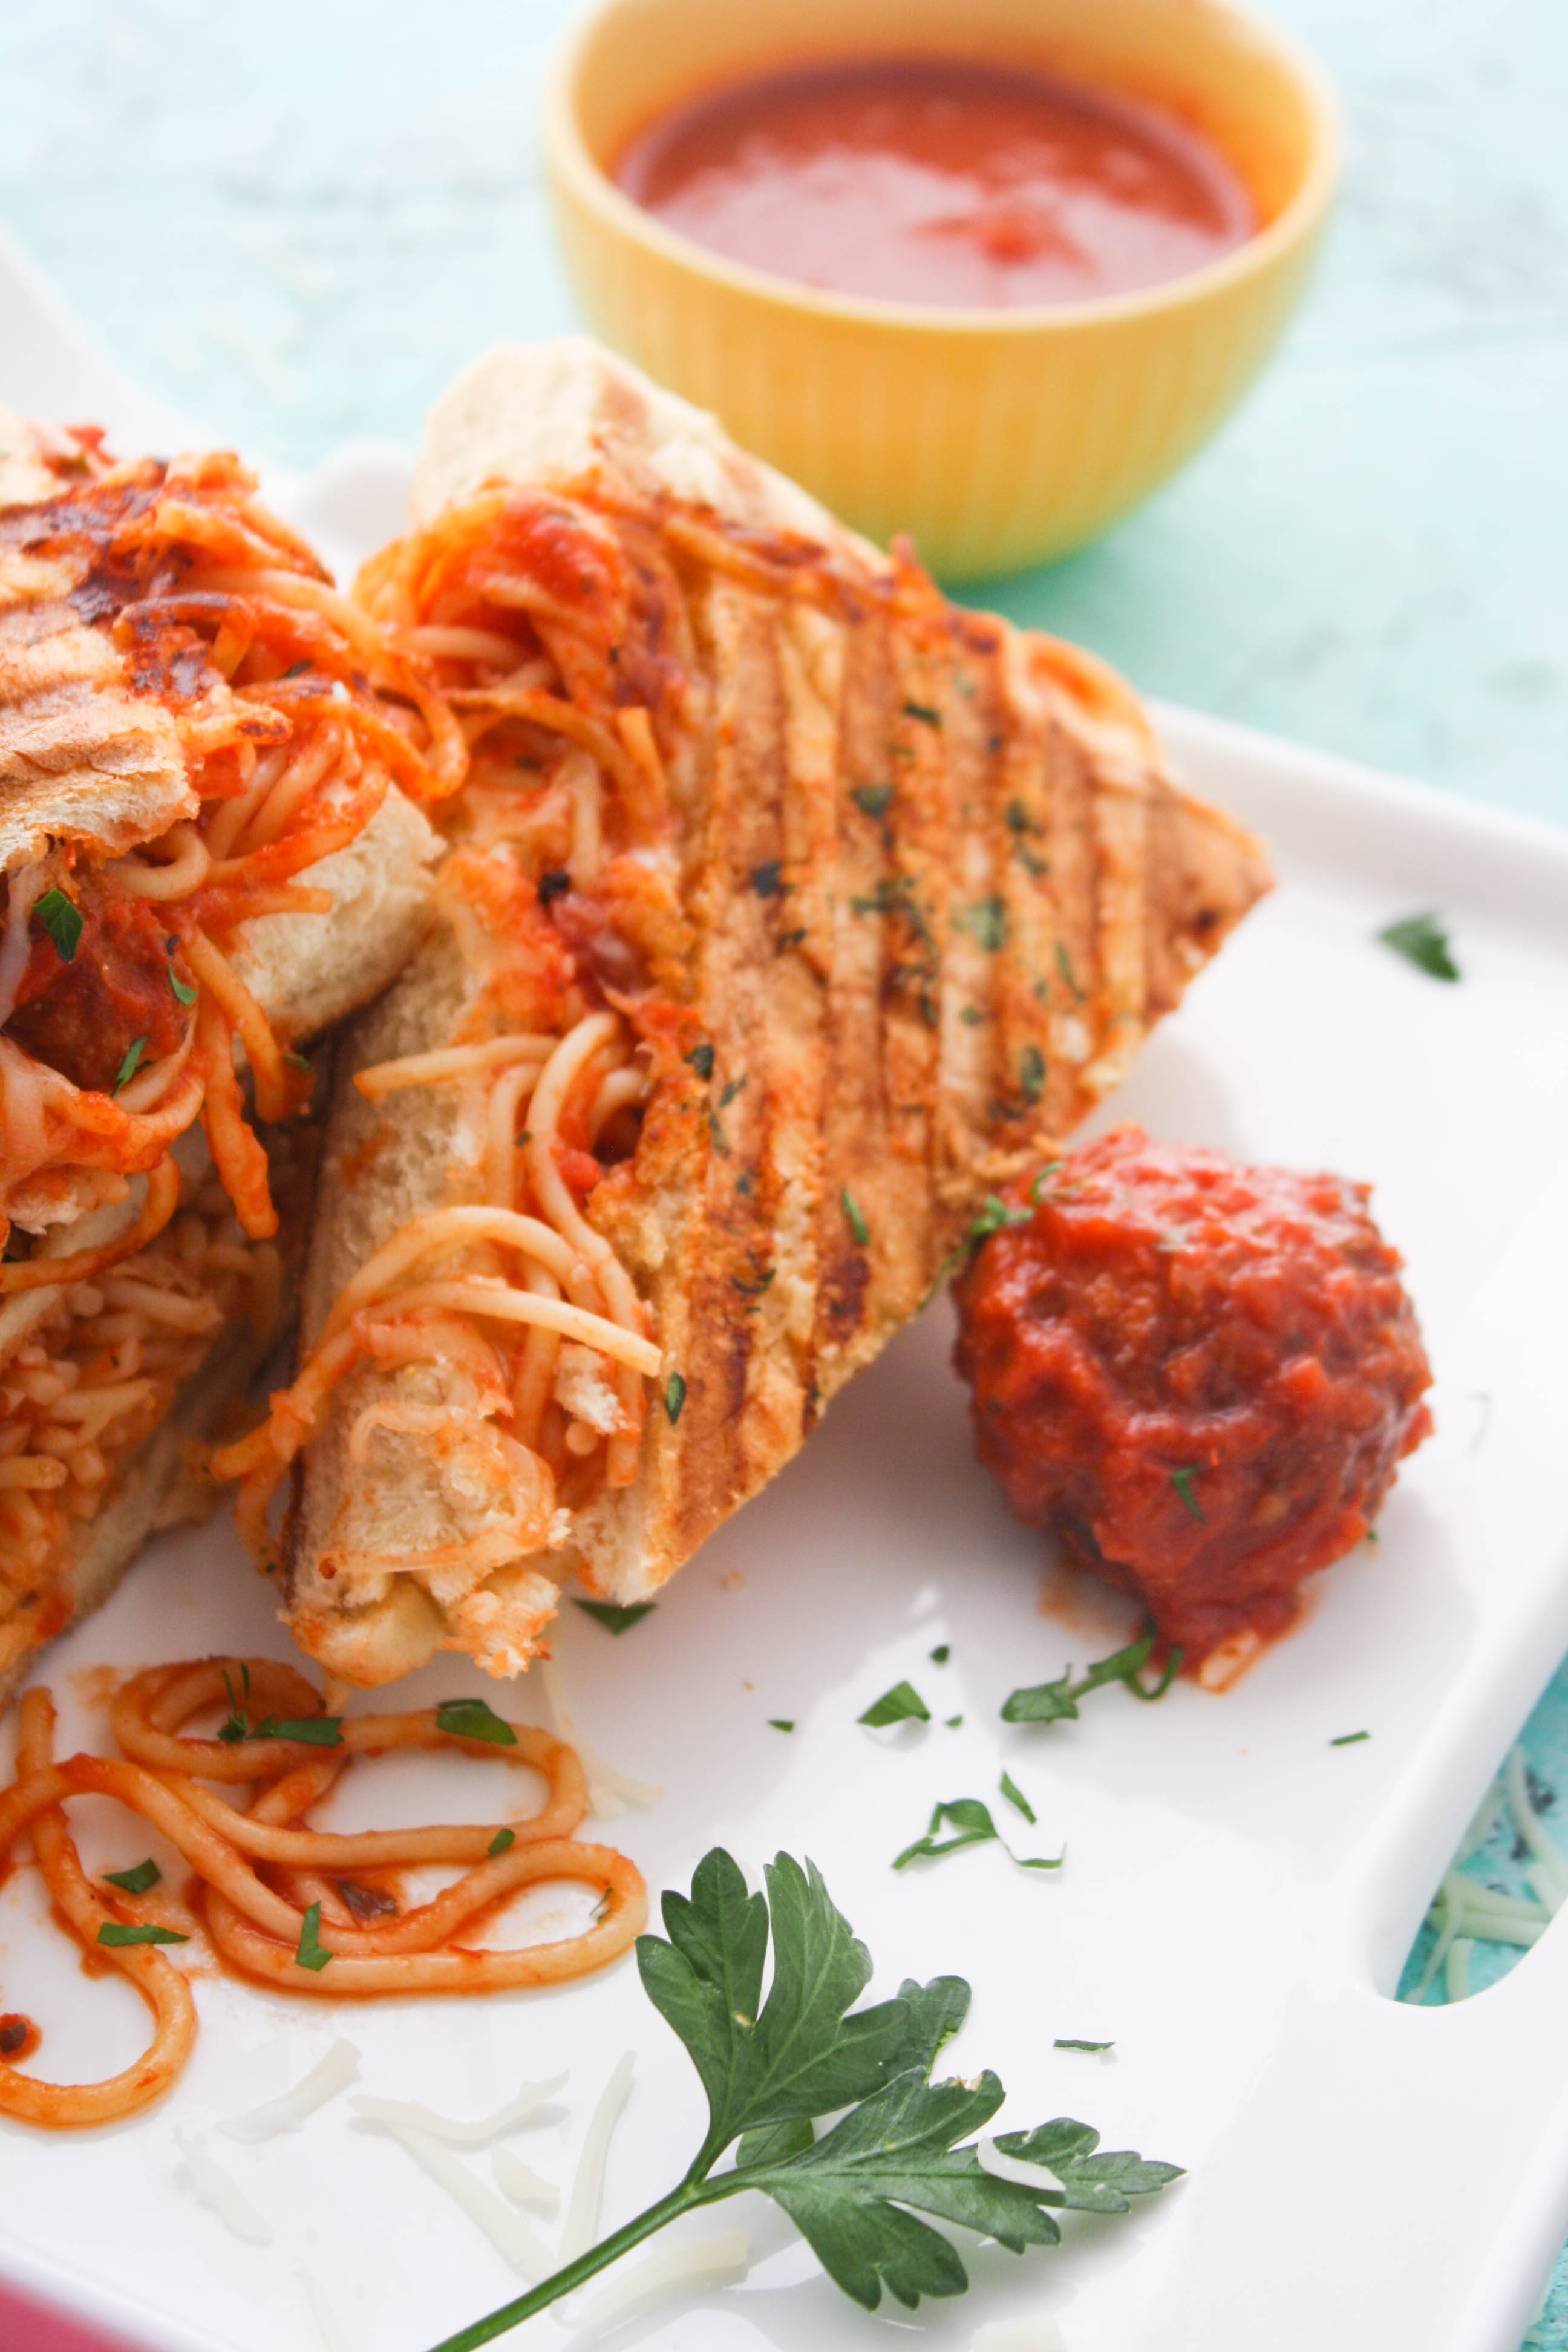 Leftover Spaghetti & Meatball Panini is a great dish to use up last night's meal! You'll love how fun this sandwich is!